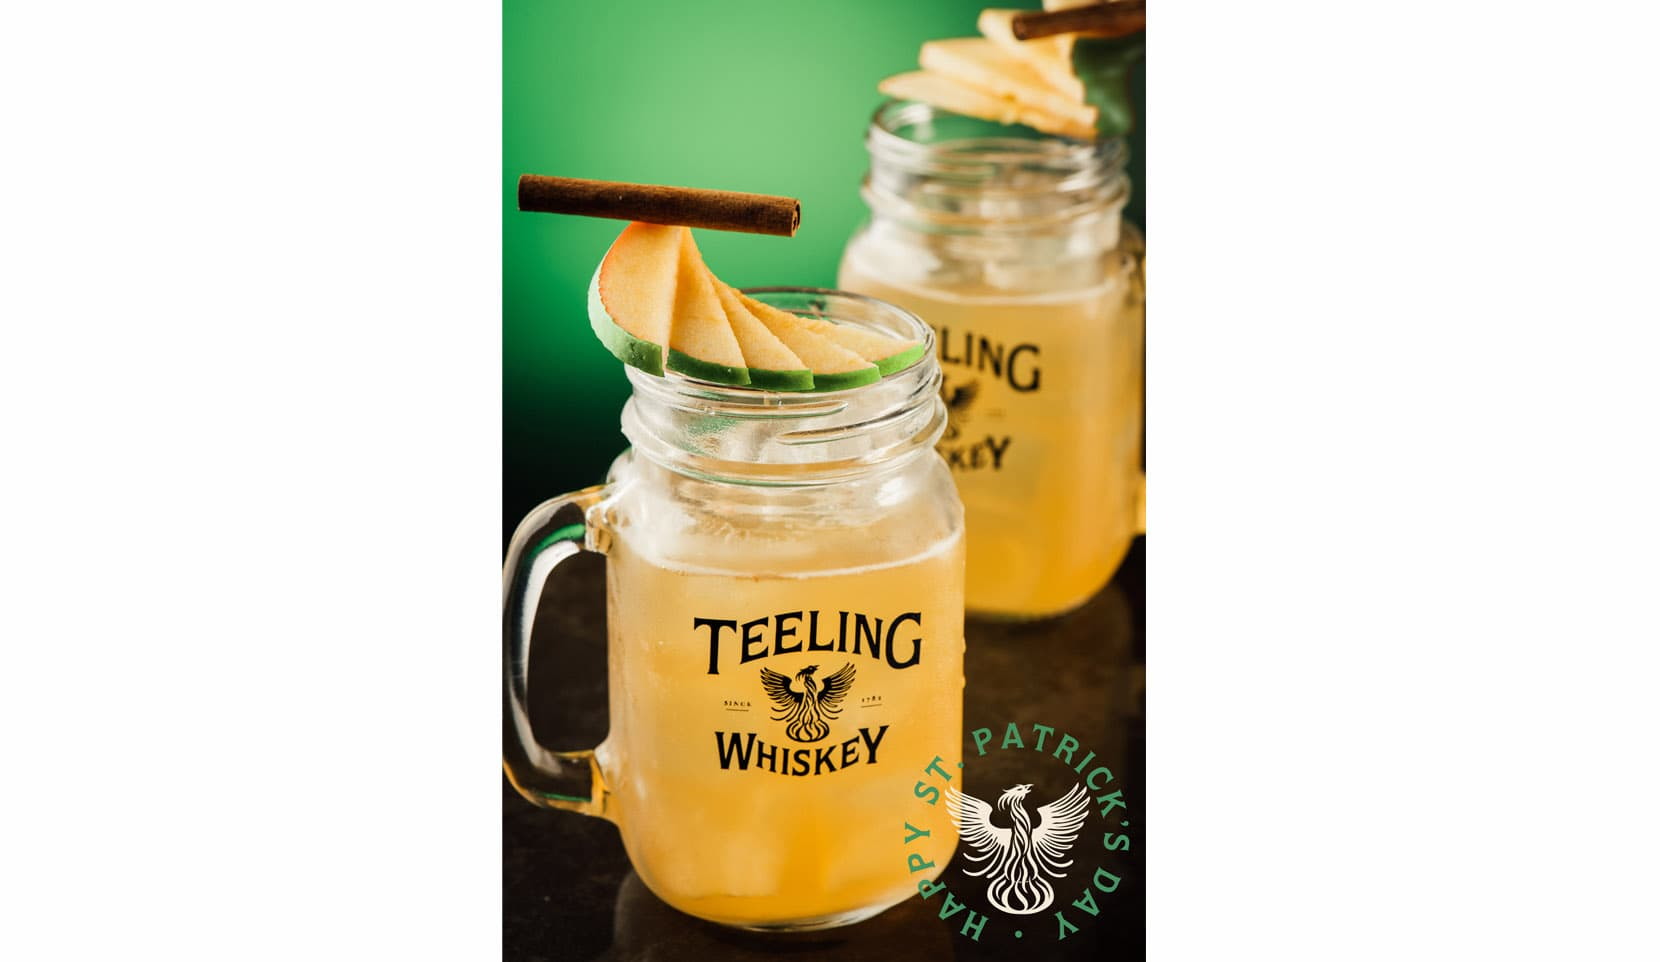 Teeling Whiskey St. Patrick's Day Blog!